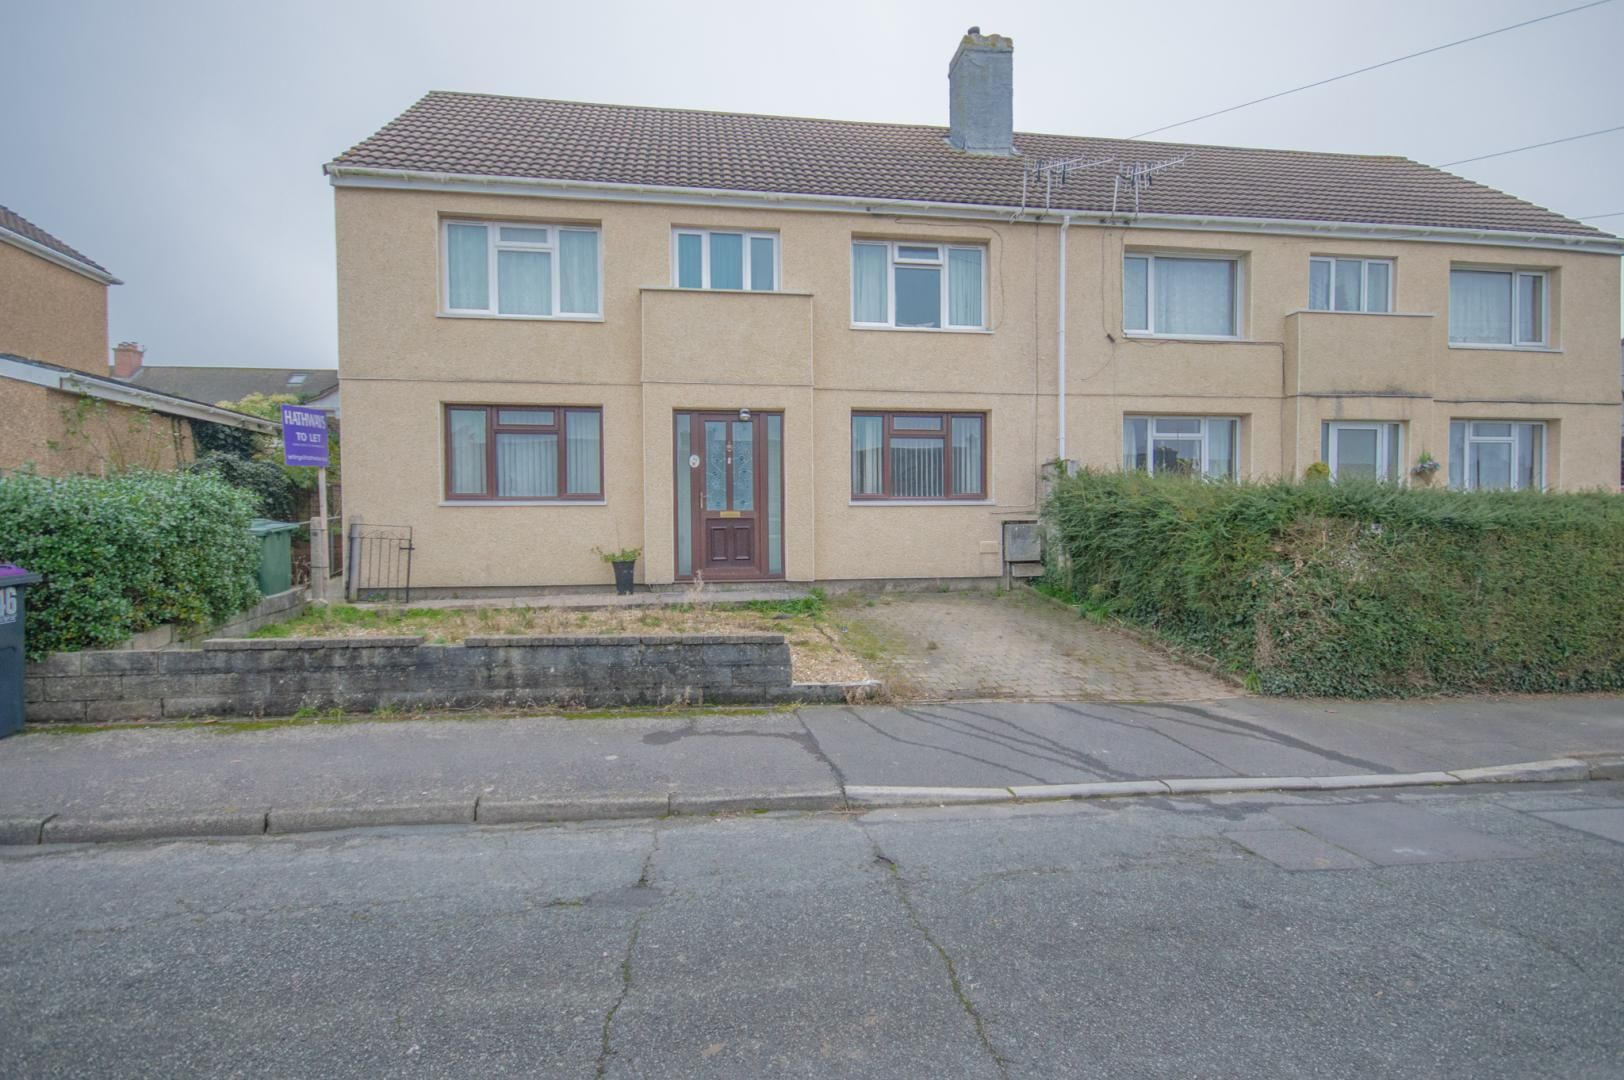 2 bed flat to rent in Glosters Parade, NP4